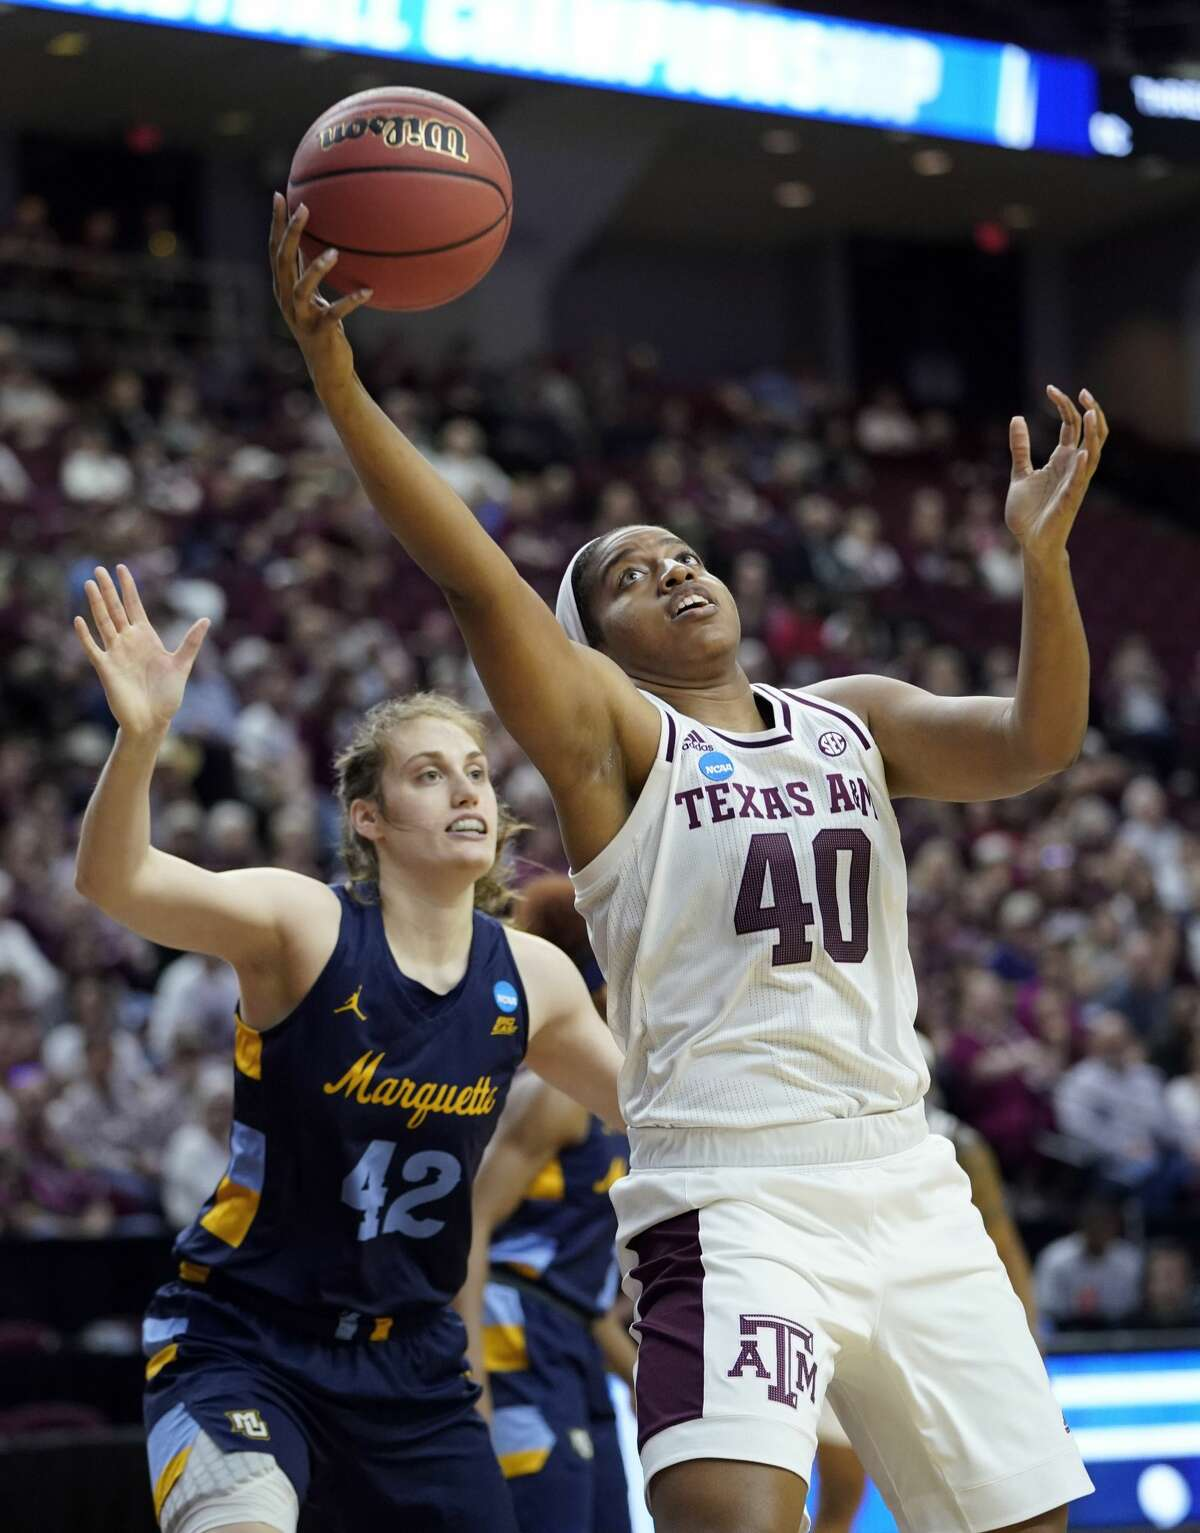 Texas A&M's Ciera Johnson (40) reaches for a pass as Marquette's Lauren Van Kleunen (42) defends during the first half of a second round women's college basketball game in the NCAA Tournament Sunday, March 24, 2019, in College Station, Texas. (AP Photo/David J. Phillip)